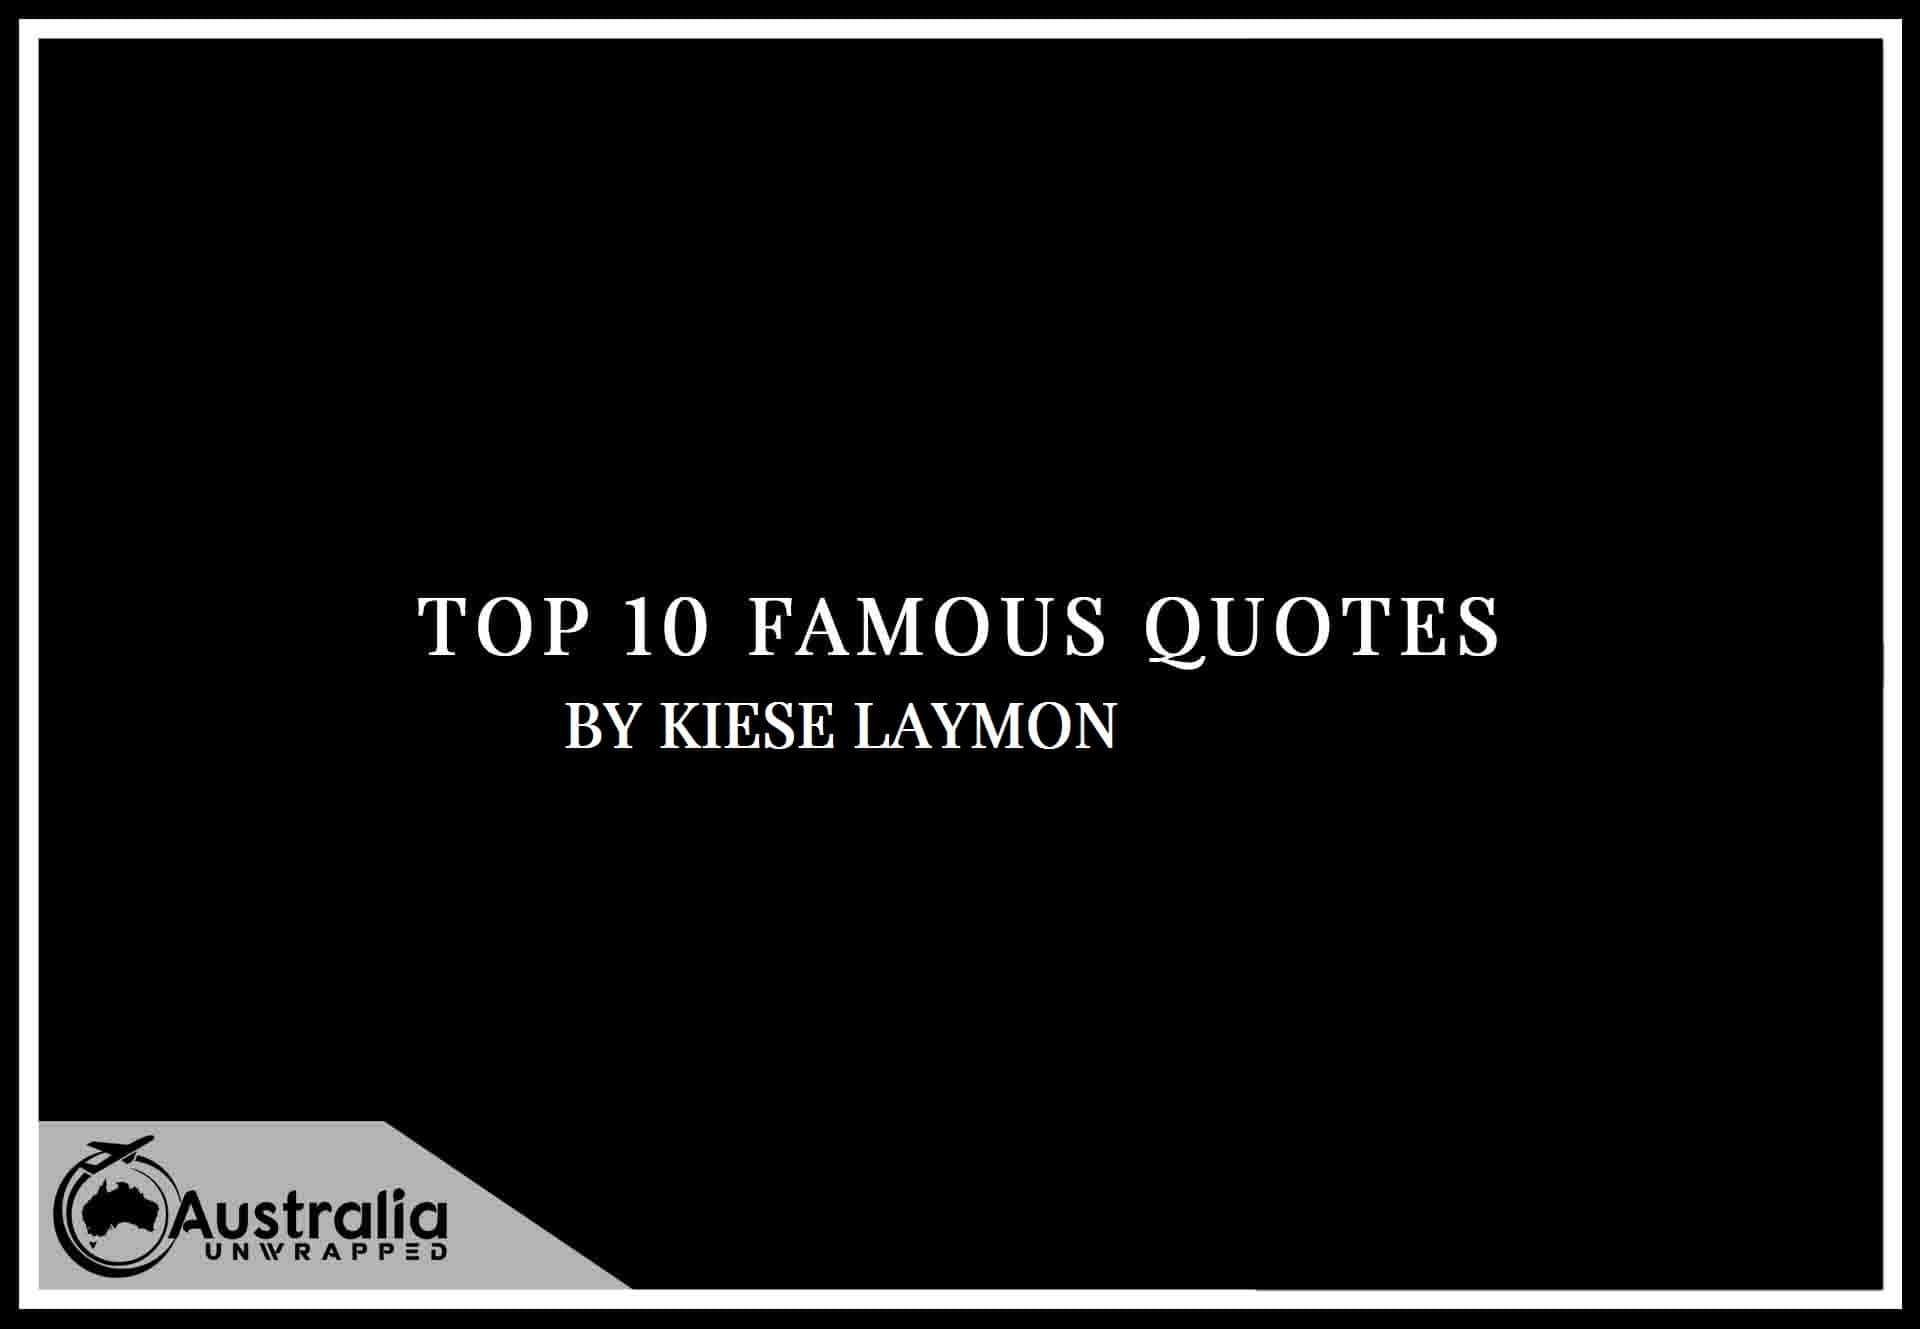 Kiese Laymon's Top 10 Popular and Famous Quotes